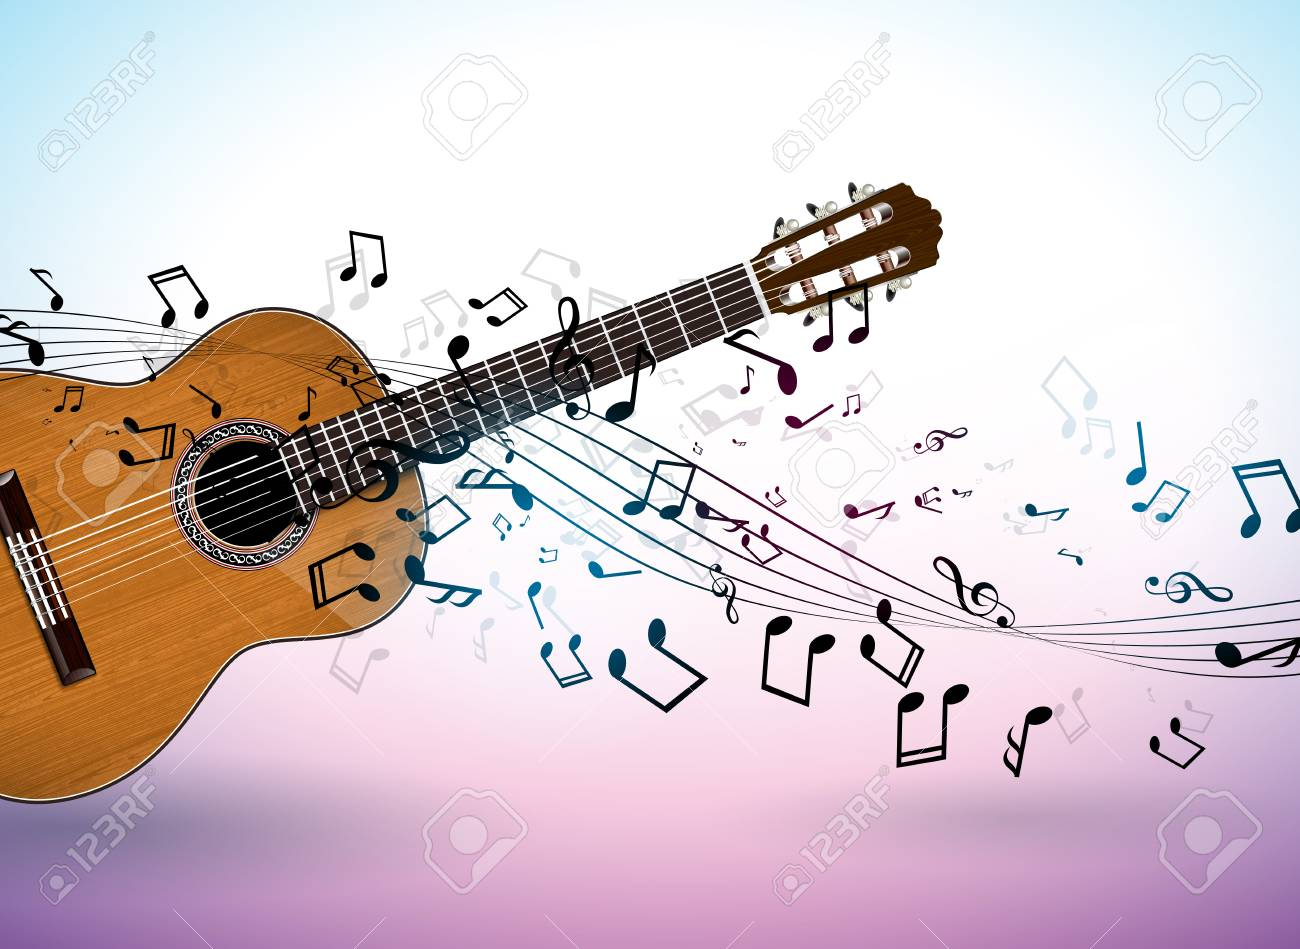 Music Banner Design With Acoustic Guitar And Falling Notes On Royalty Free Cliparts Vectors And Stock Illustration Image 101974453